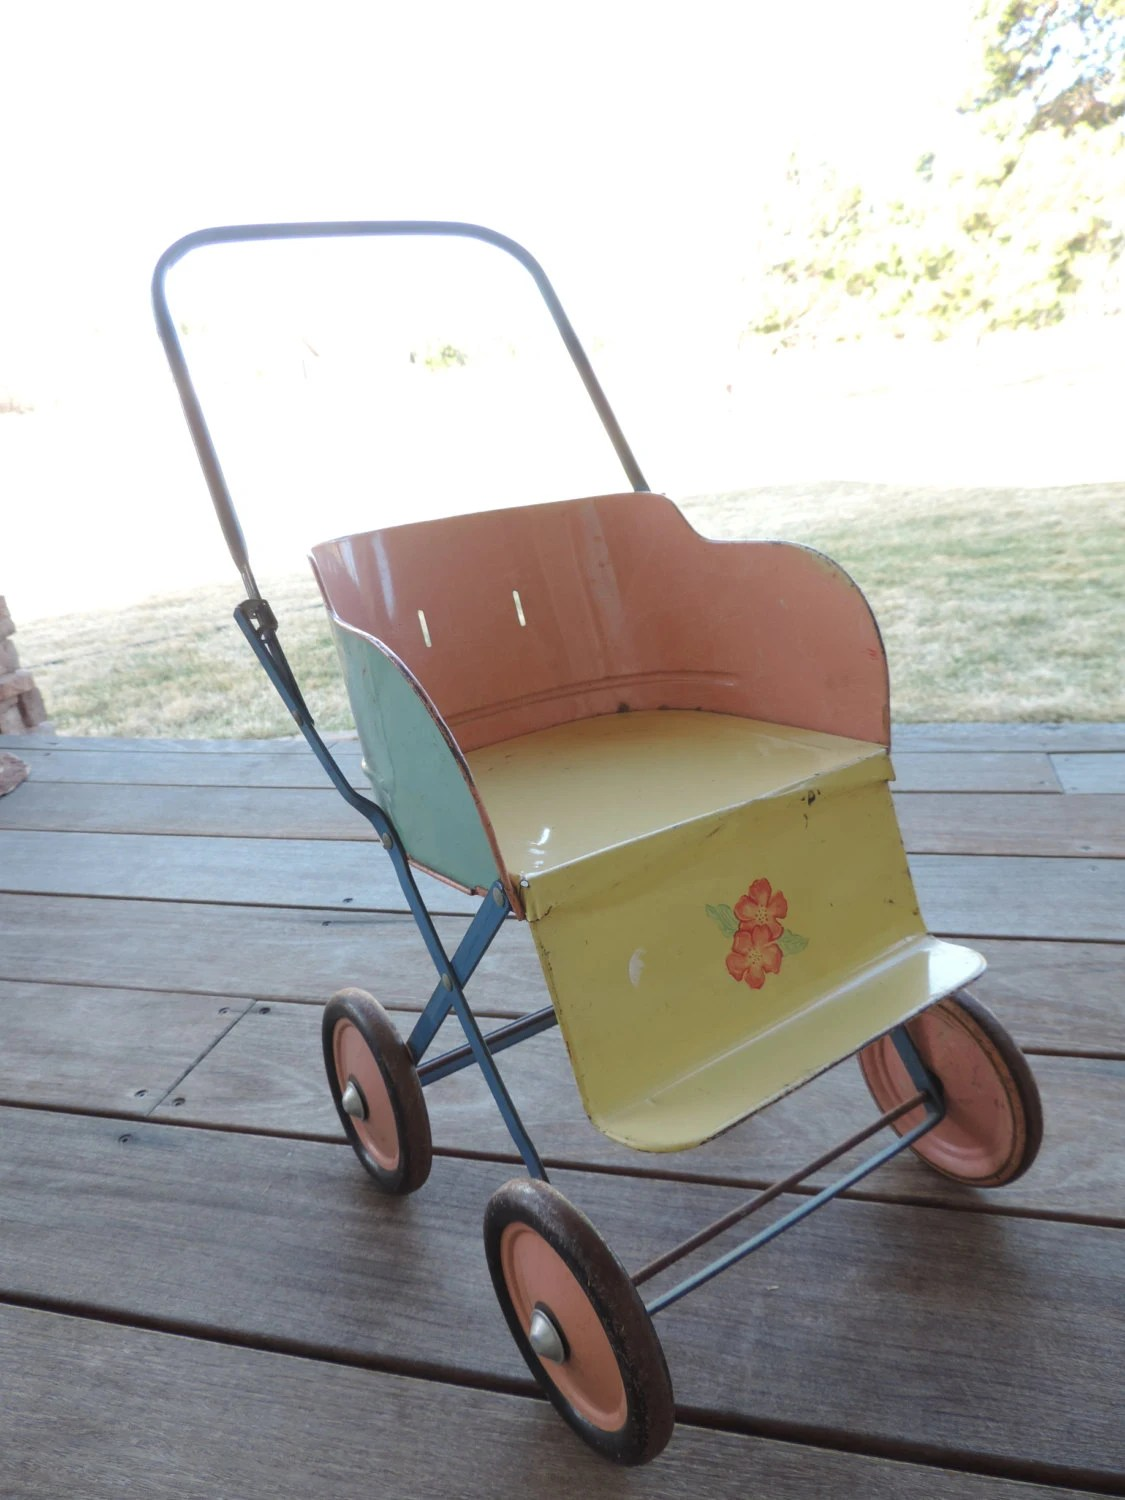 Newborn Baby Buggy Reviews Vintage Doll Stroller Baby Stroller Metal Baby Buggy Tin